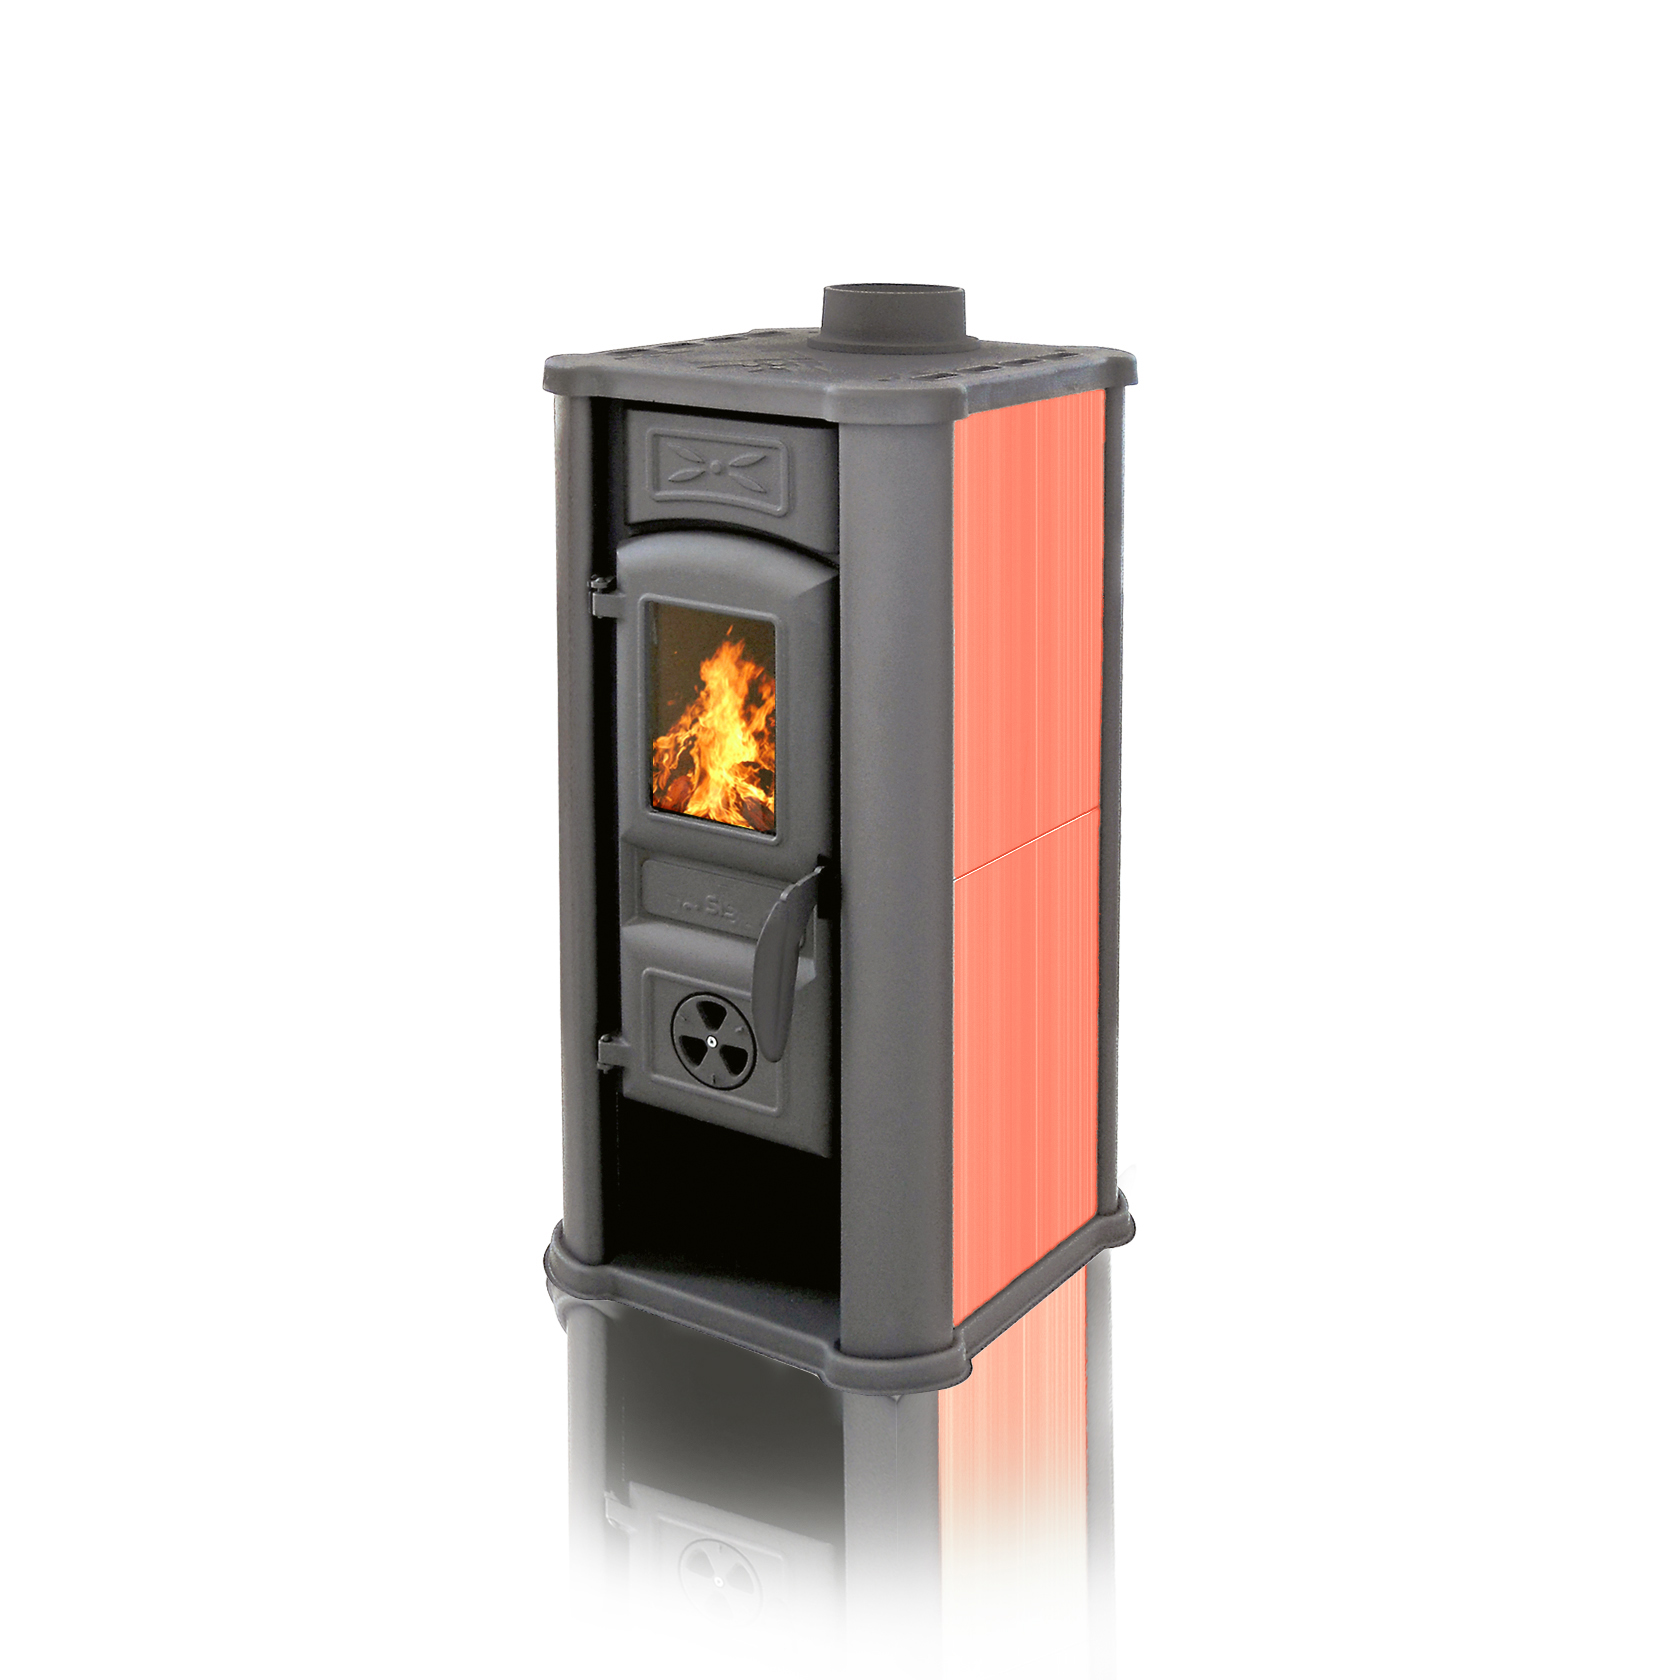 Fireplace Diana red 6kW